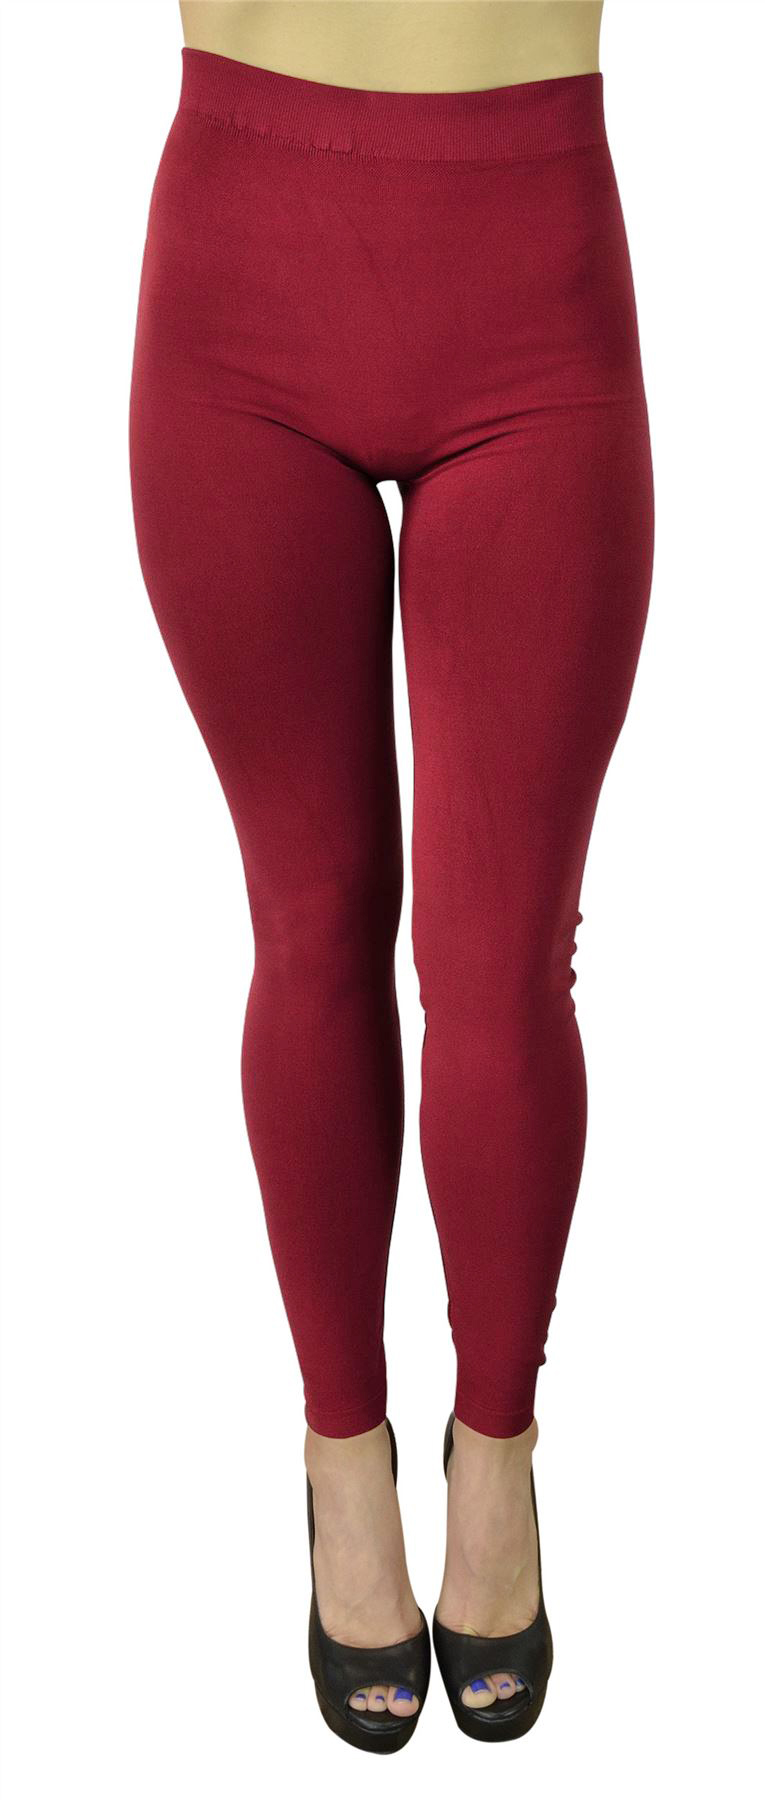 Belle Donne High Waist Leggings Tights for Women Fashion Gym Yoga Casual Trendy Colors - Burgundy-5 in-Waistband